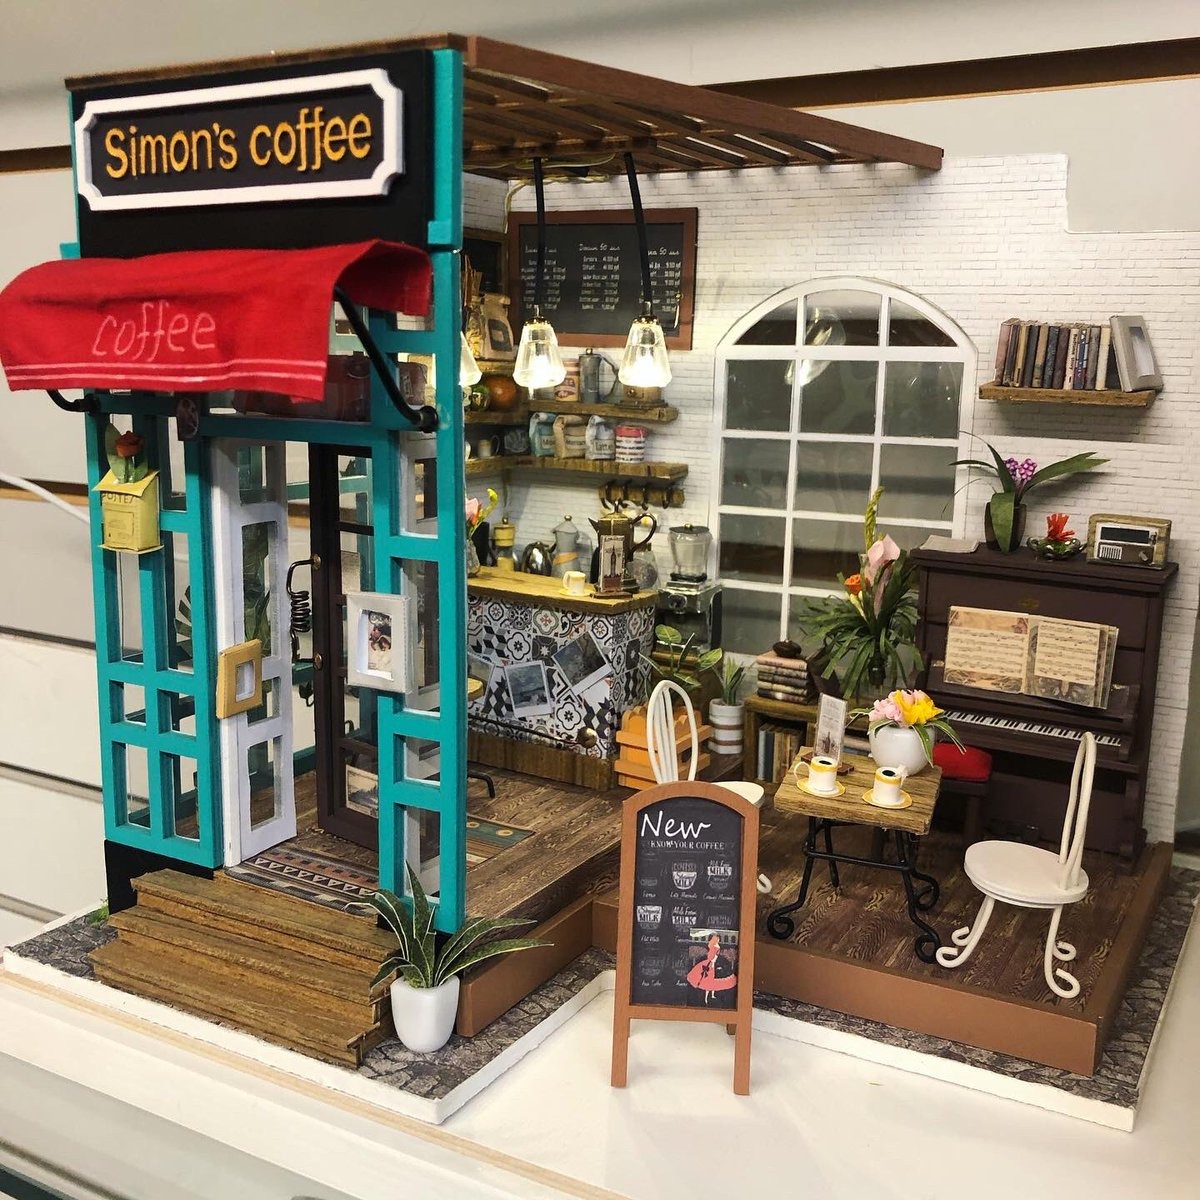 DIY Miniature Houses, lots of Uber Cool options to choose from. #shop519 #getdtl #diy #diyminiaturehouse #fun #lockdownlife #shoplocal #shopsmall #craft #coffeeshop #londonontario #localbusiness